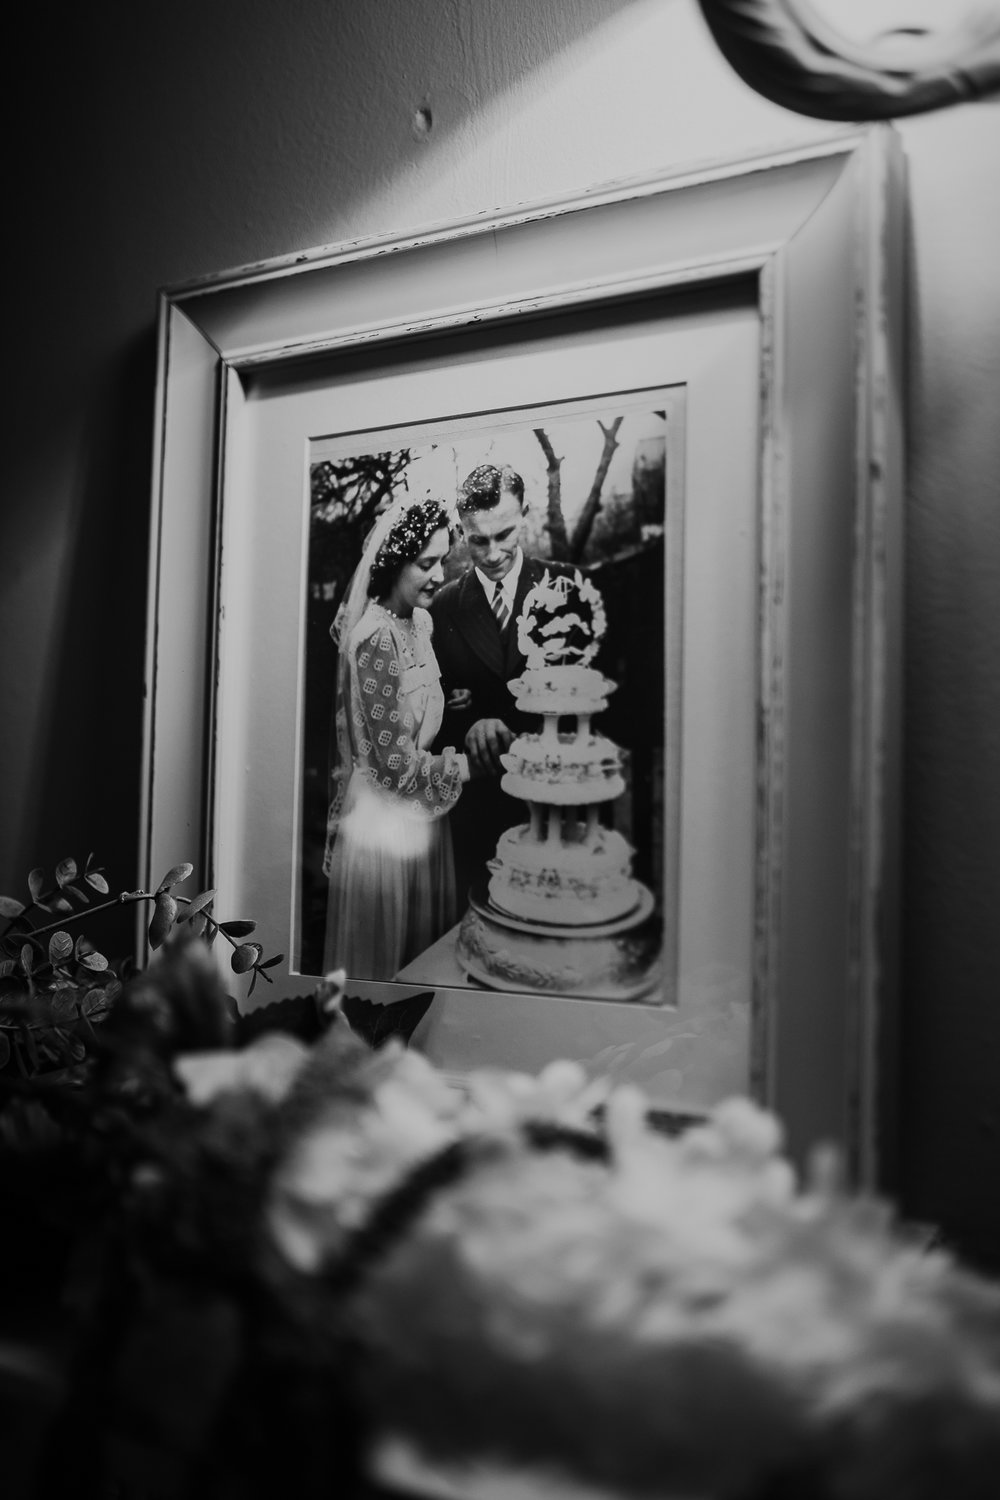 Wedding Photo - Victoria & Jamie - WeddingsbyQay - Wedding Photographer (7 of 209).jpg